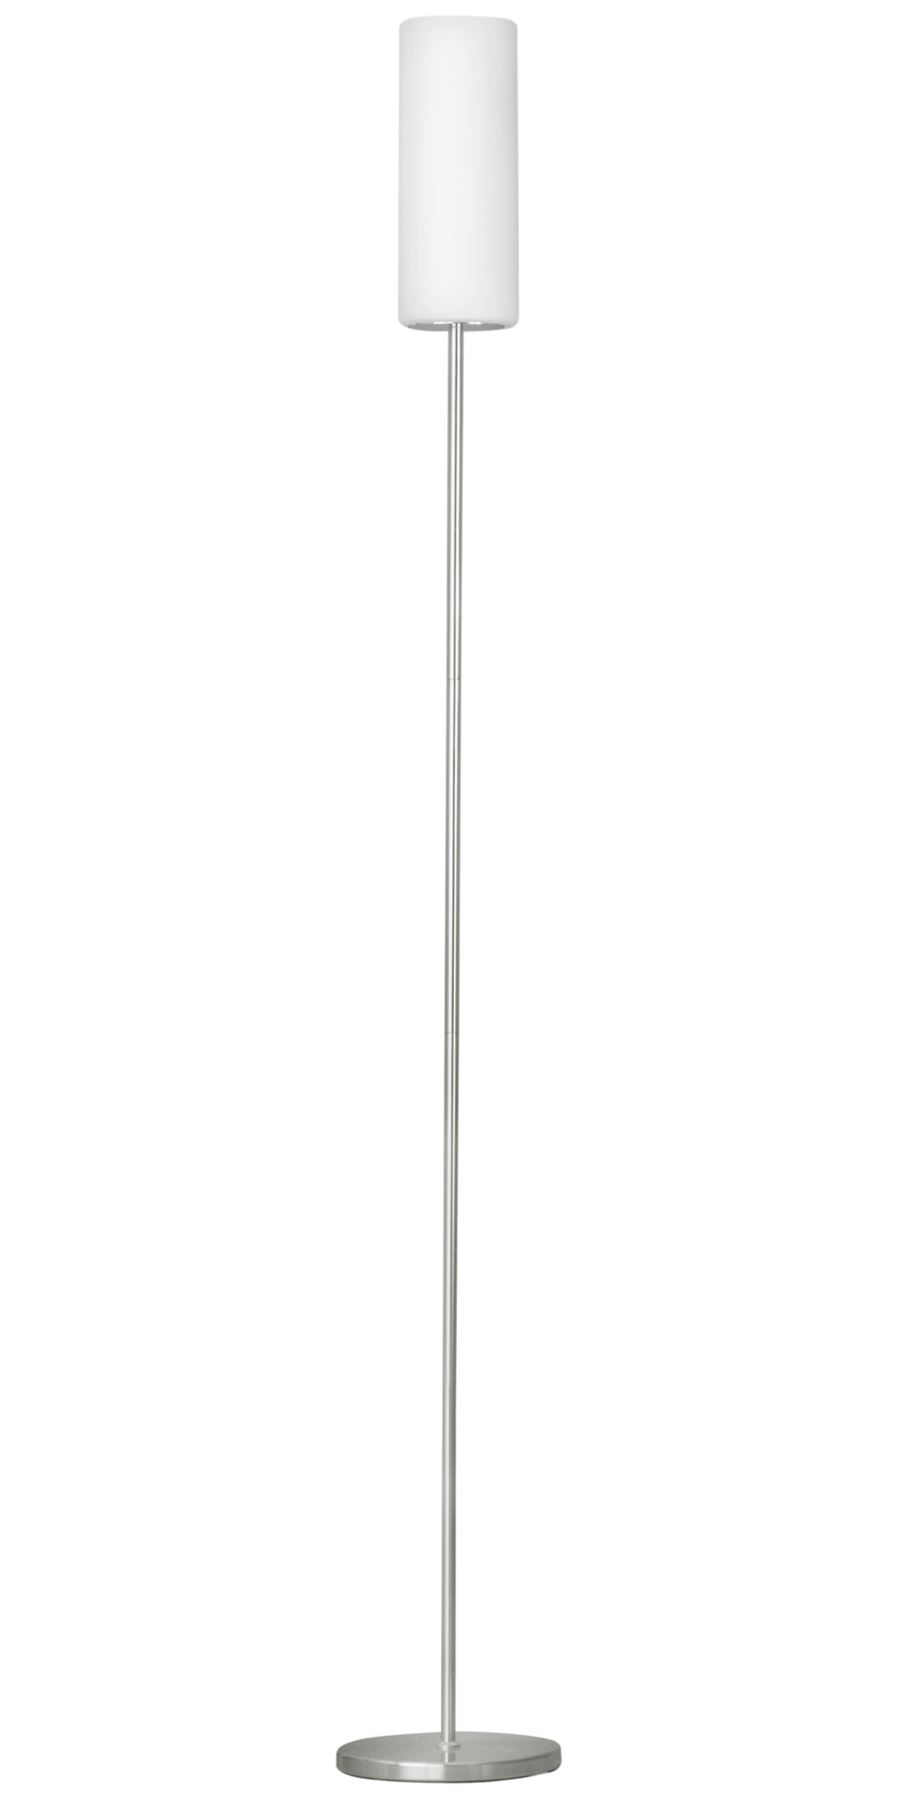 Troy 3 Floor Lamp 1 Light Coated White Glass Shade Foot-Switch